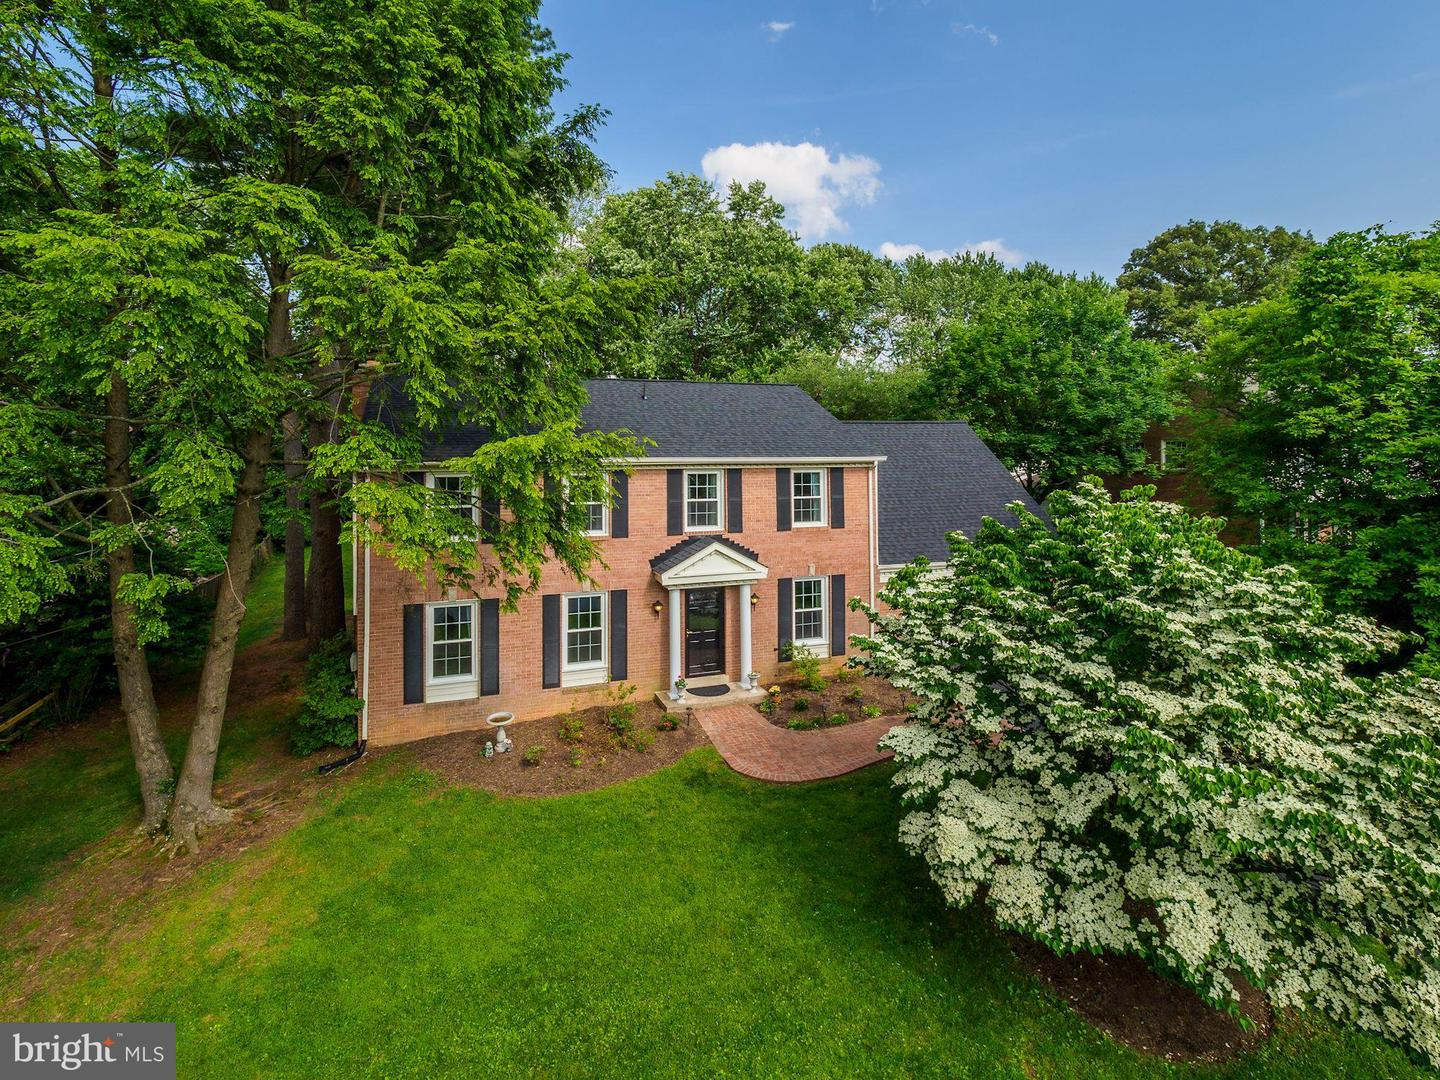 13819 NORTH GATE LANE, SILVER SPRING, Maryland